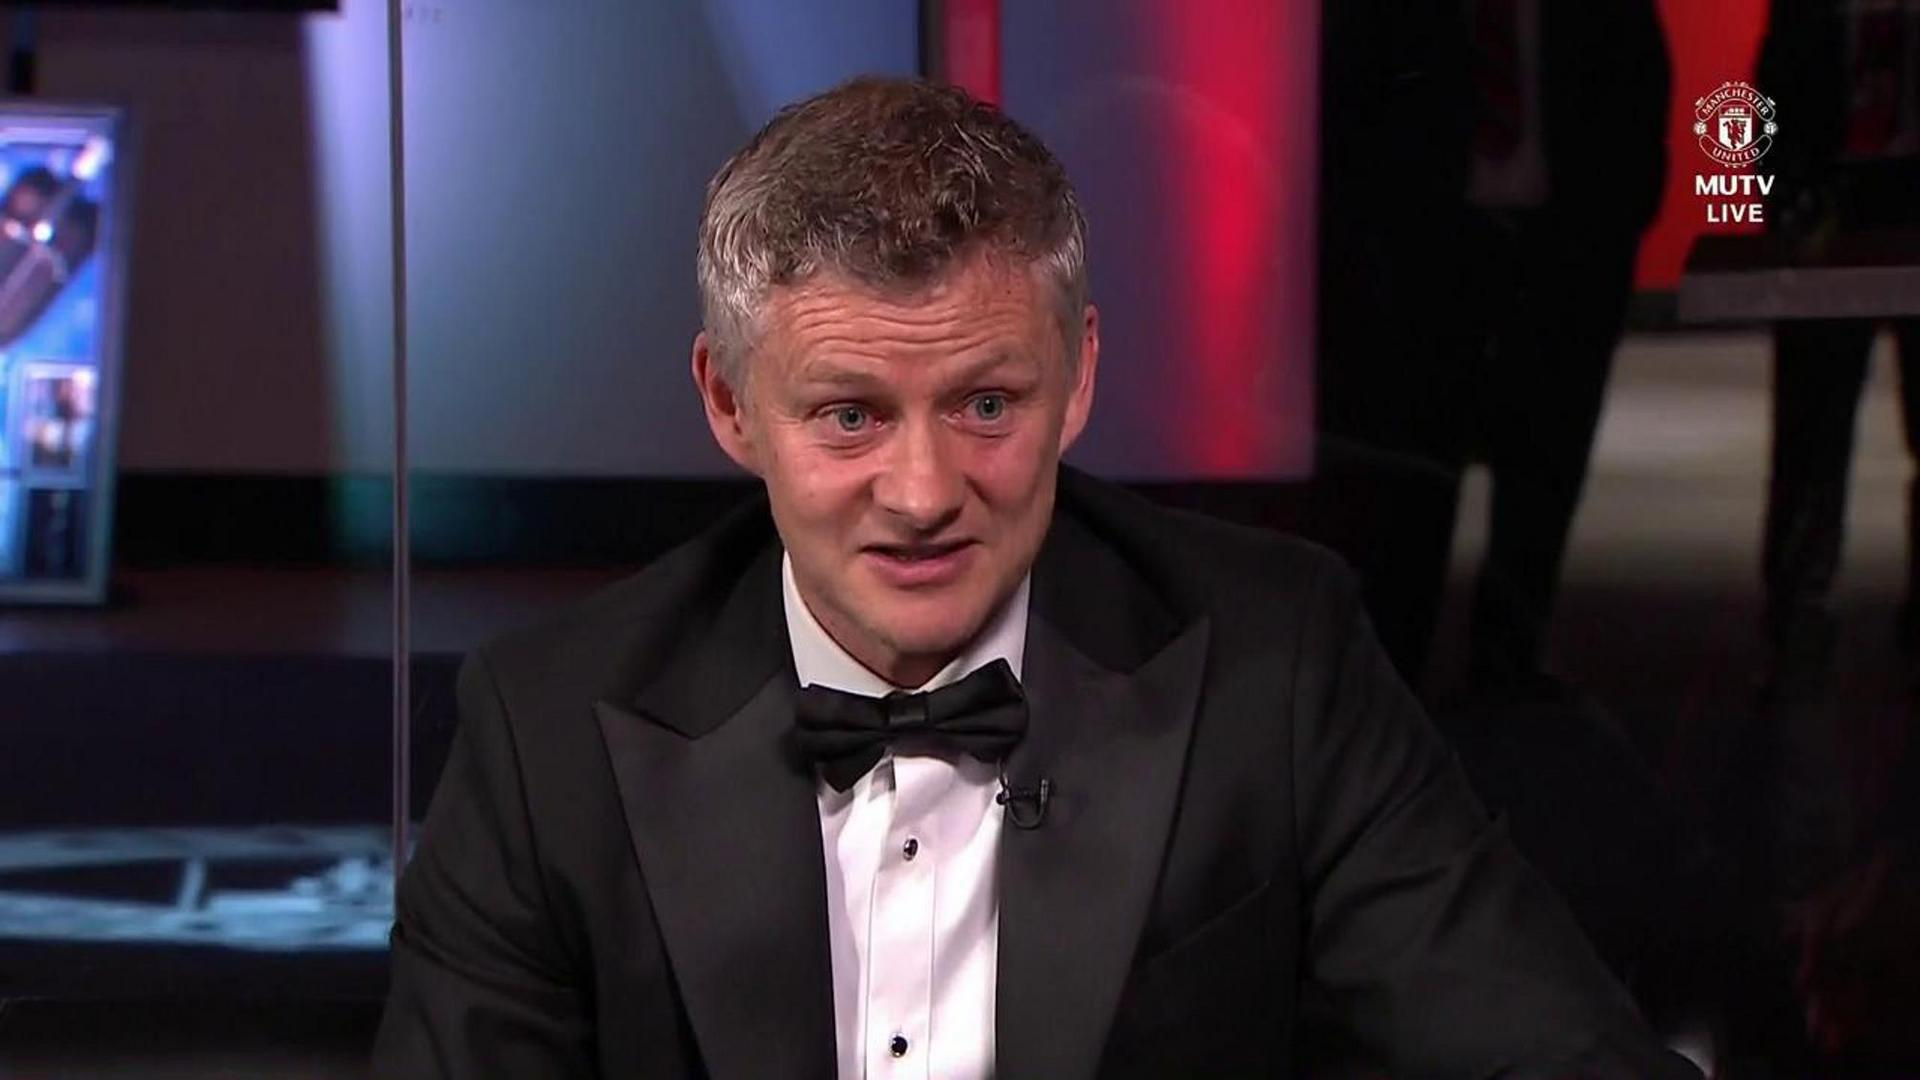 Ole Gunnar Solskjaer being interviewed at the Player of the Year awards night